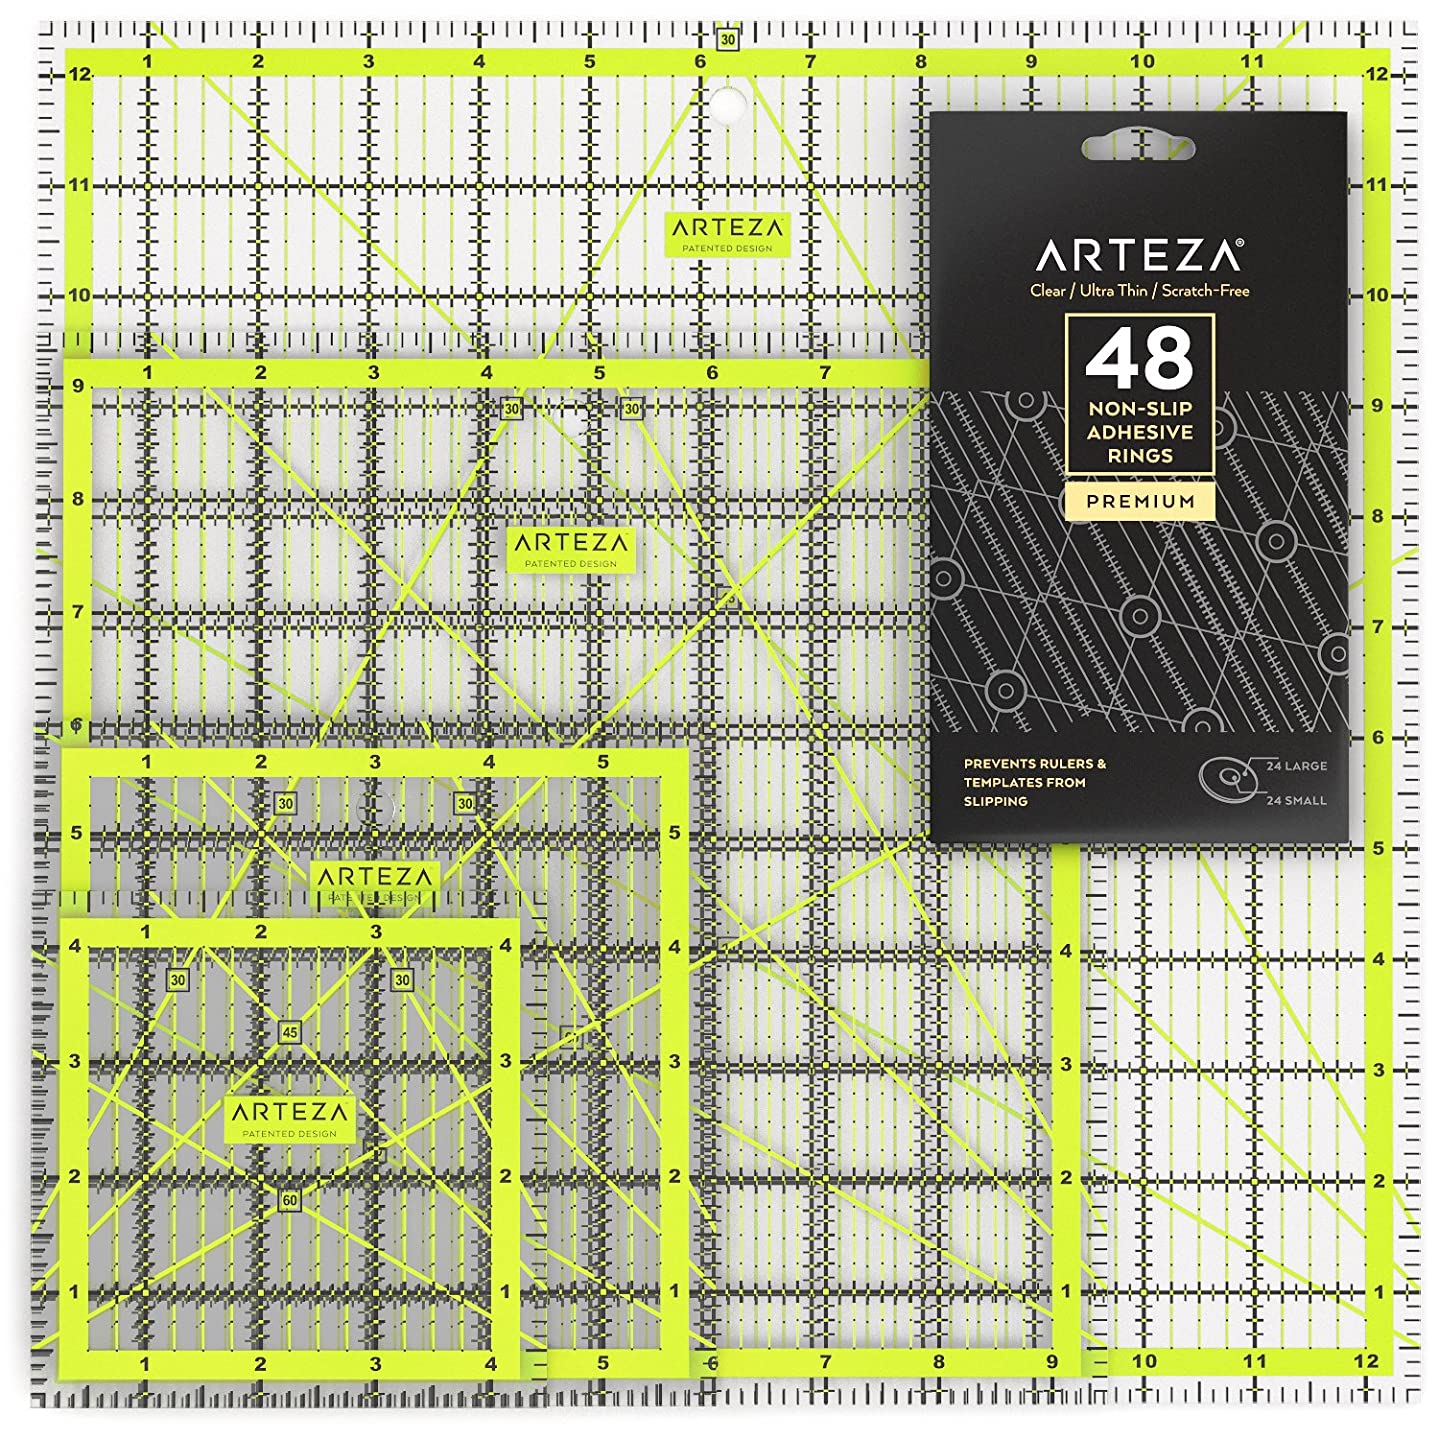 ARTEZA Acrylic Quilters Ruler & Non Slip Rings - Double-Colored Grid Lines (4.5